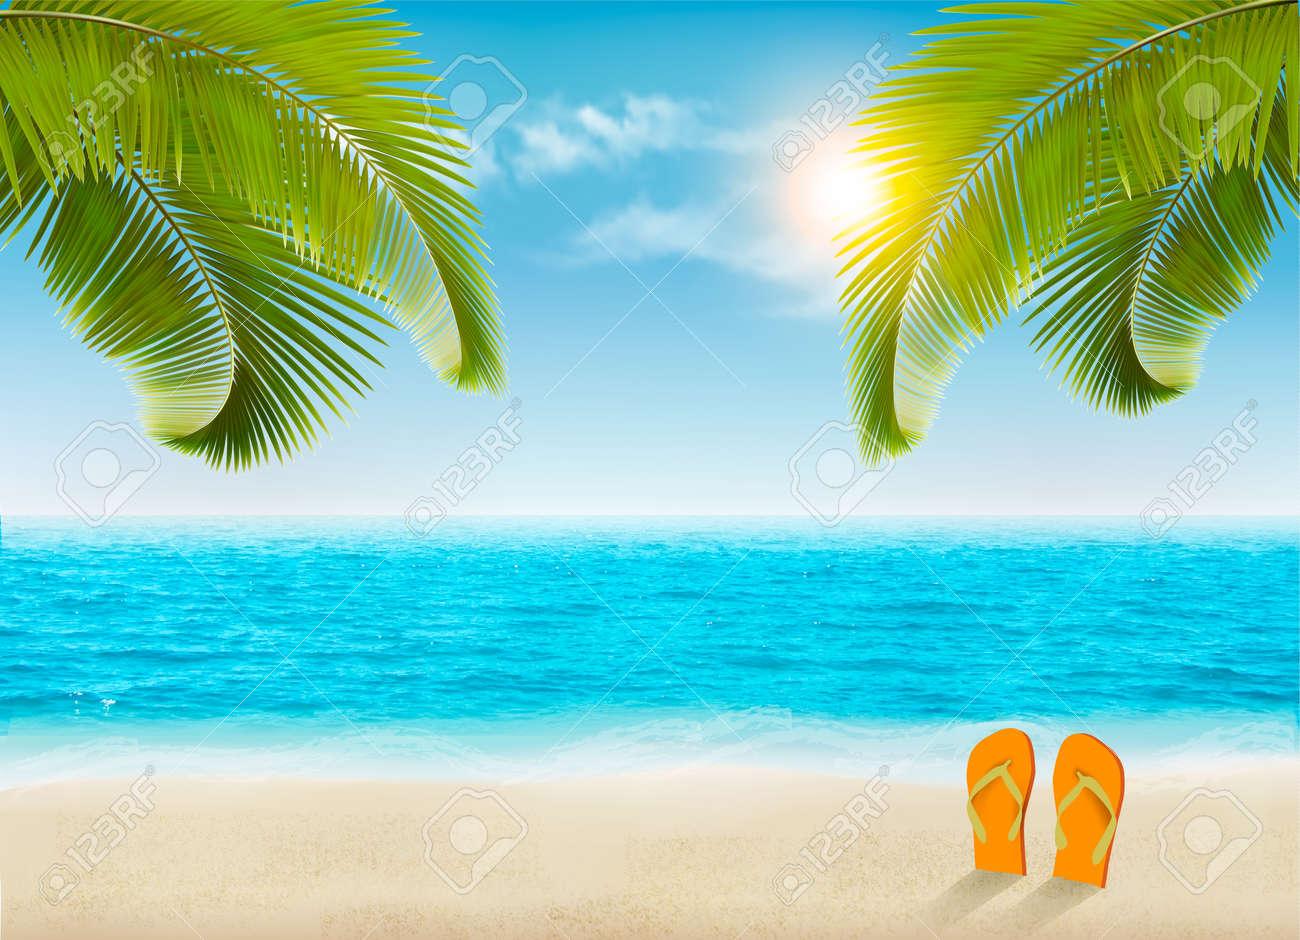 vacation background beach with palm trees and blue sea vector